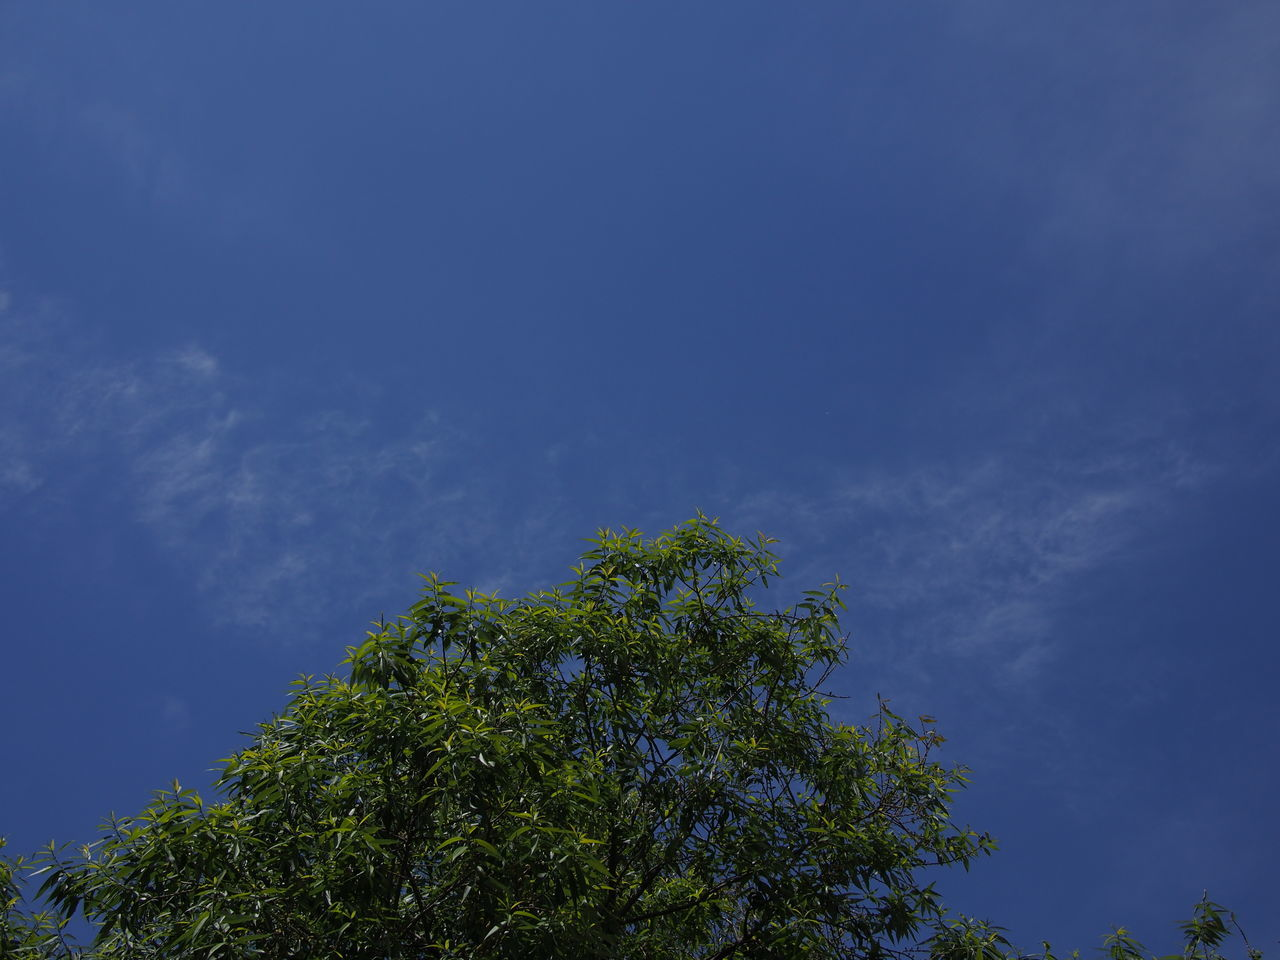 tree, low angle view, nature, beauty in nature, blue, day, growth, tranquility, sky, no people, outdoors